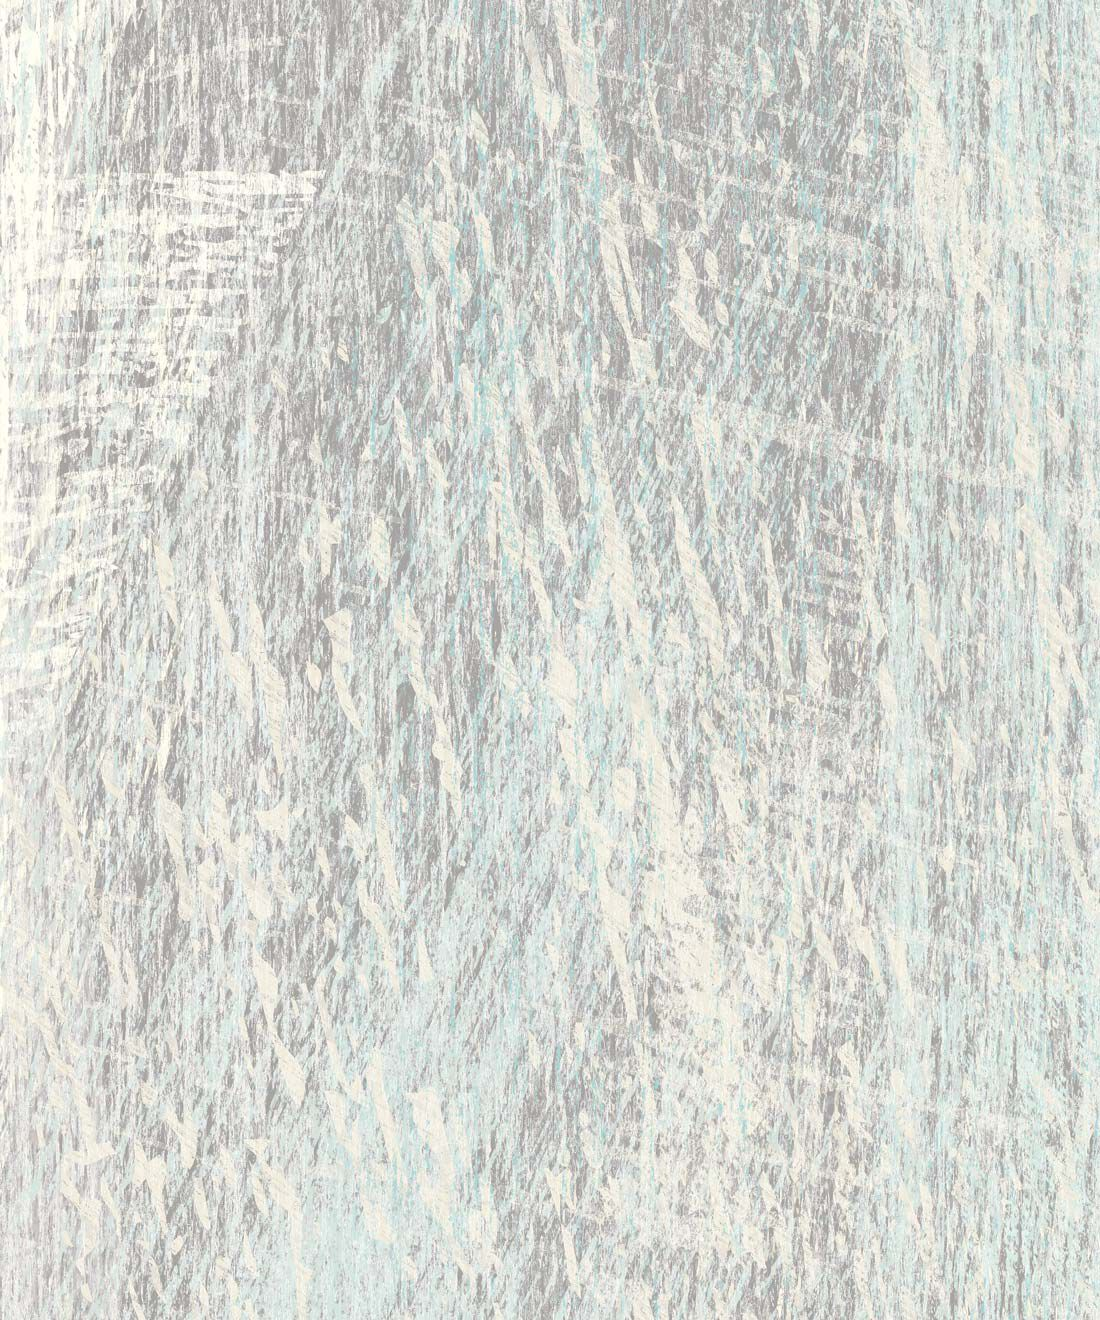 Shard Wallpaper by Simcox • Abstract Wallpaper • swatch